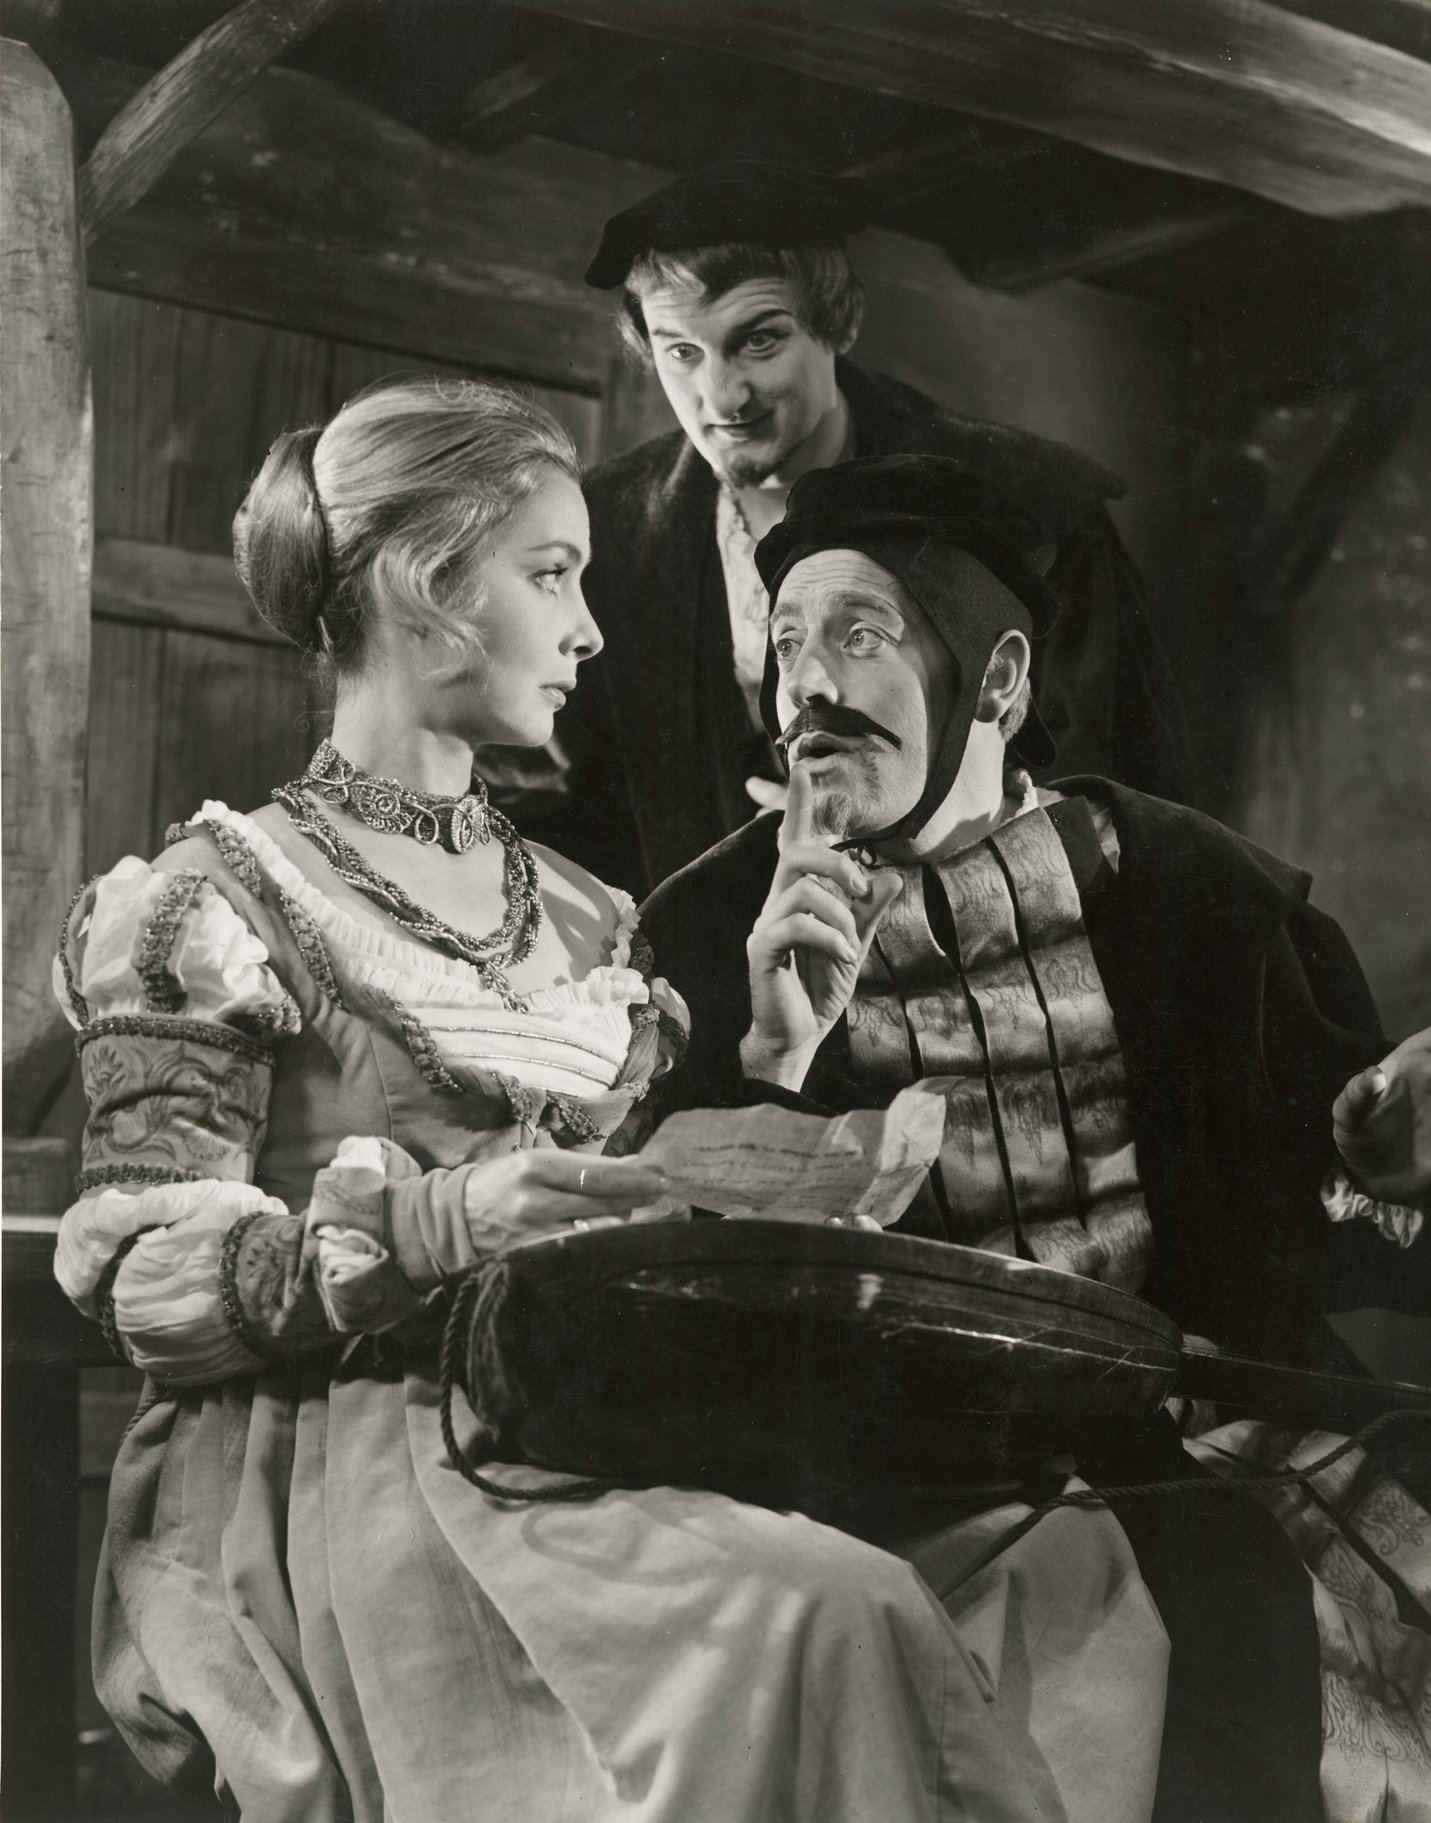 Bianca, Lucentio and Hortensio in the 1960 production of The Taming of The Shrew